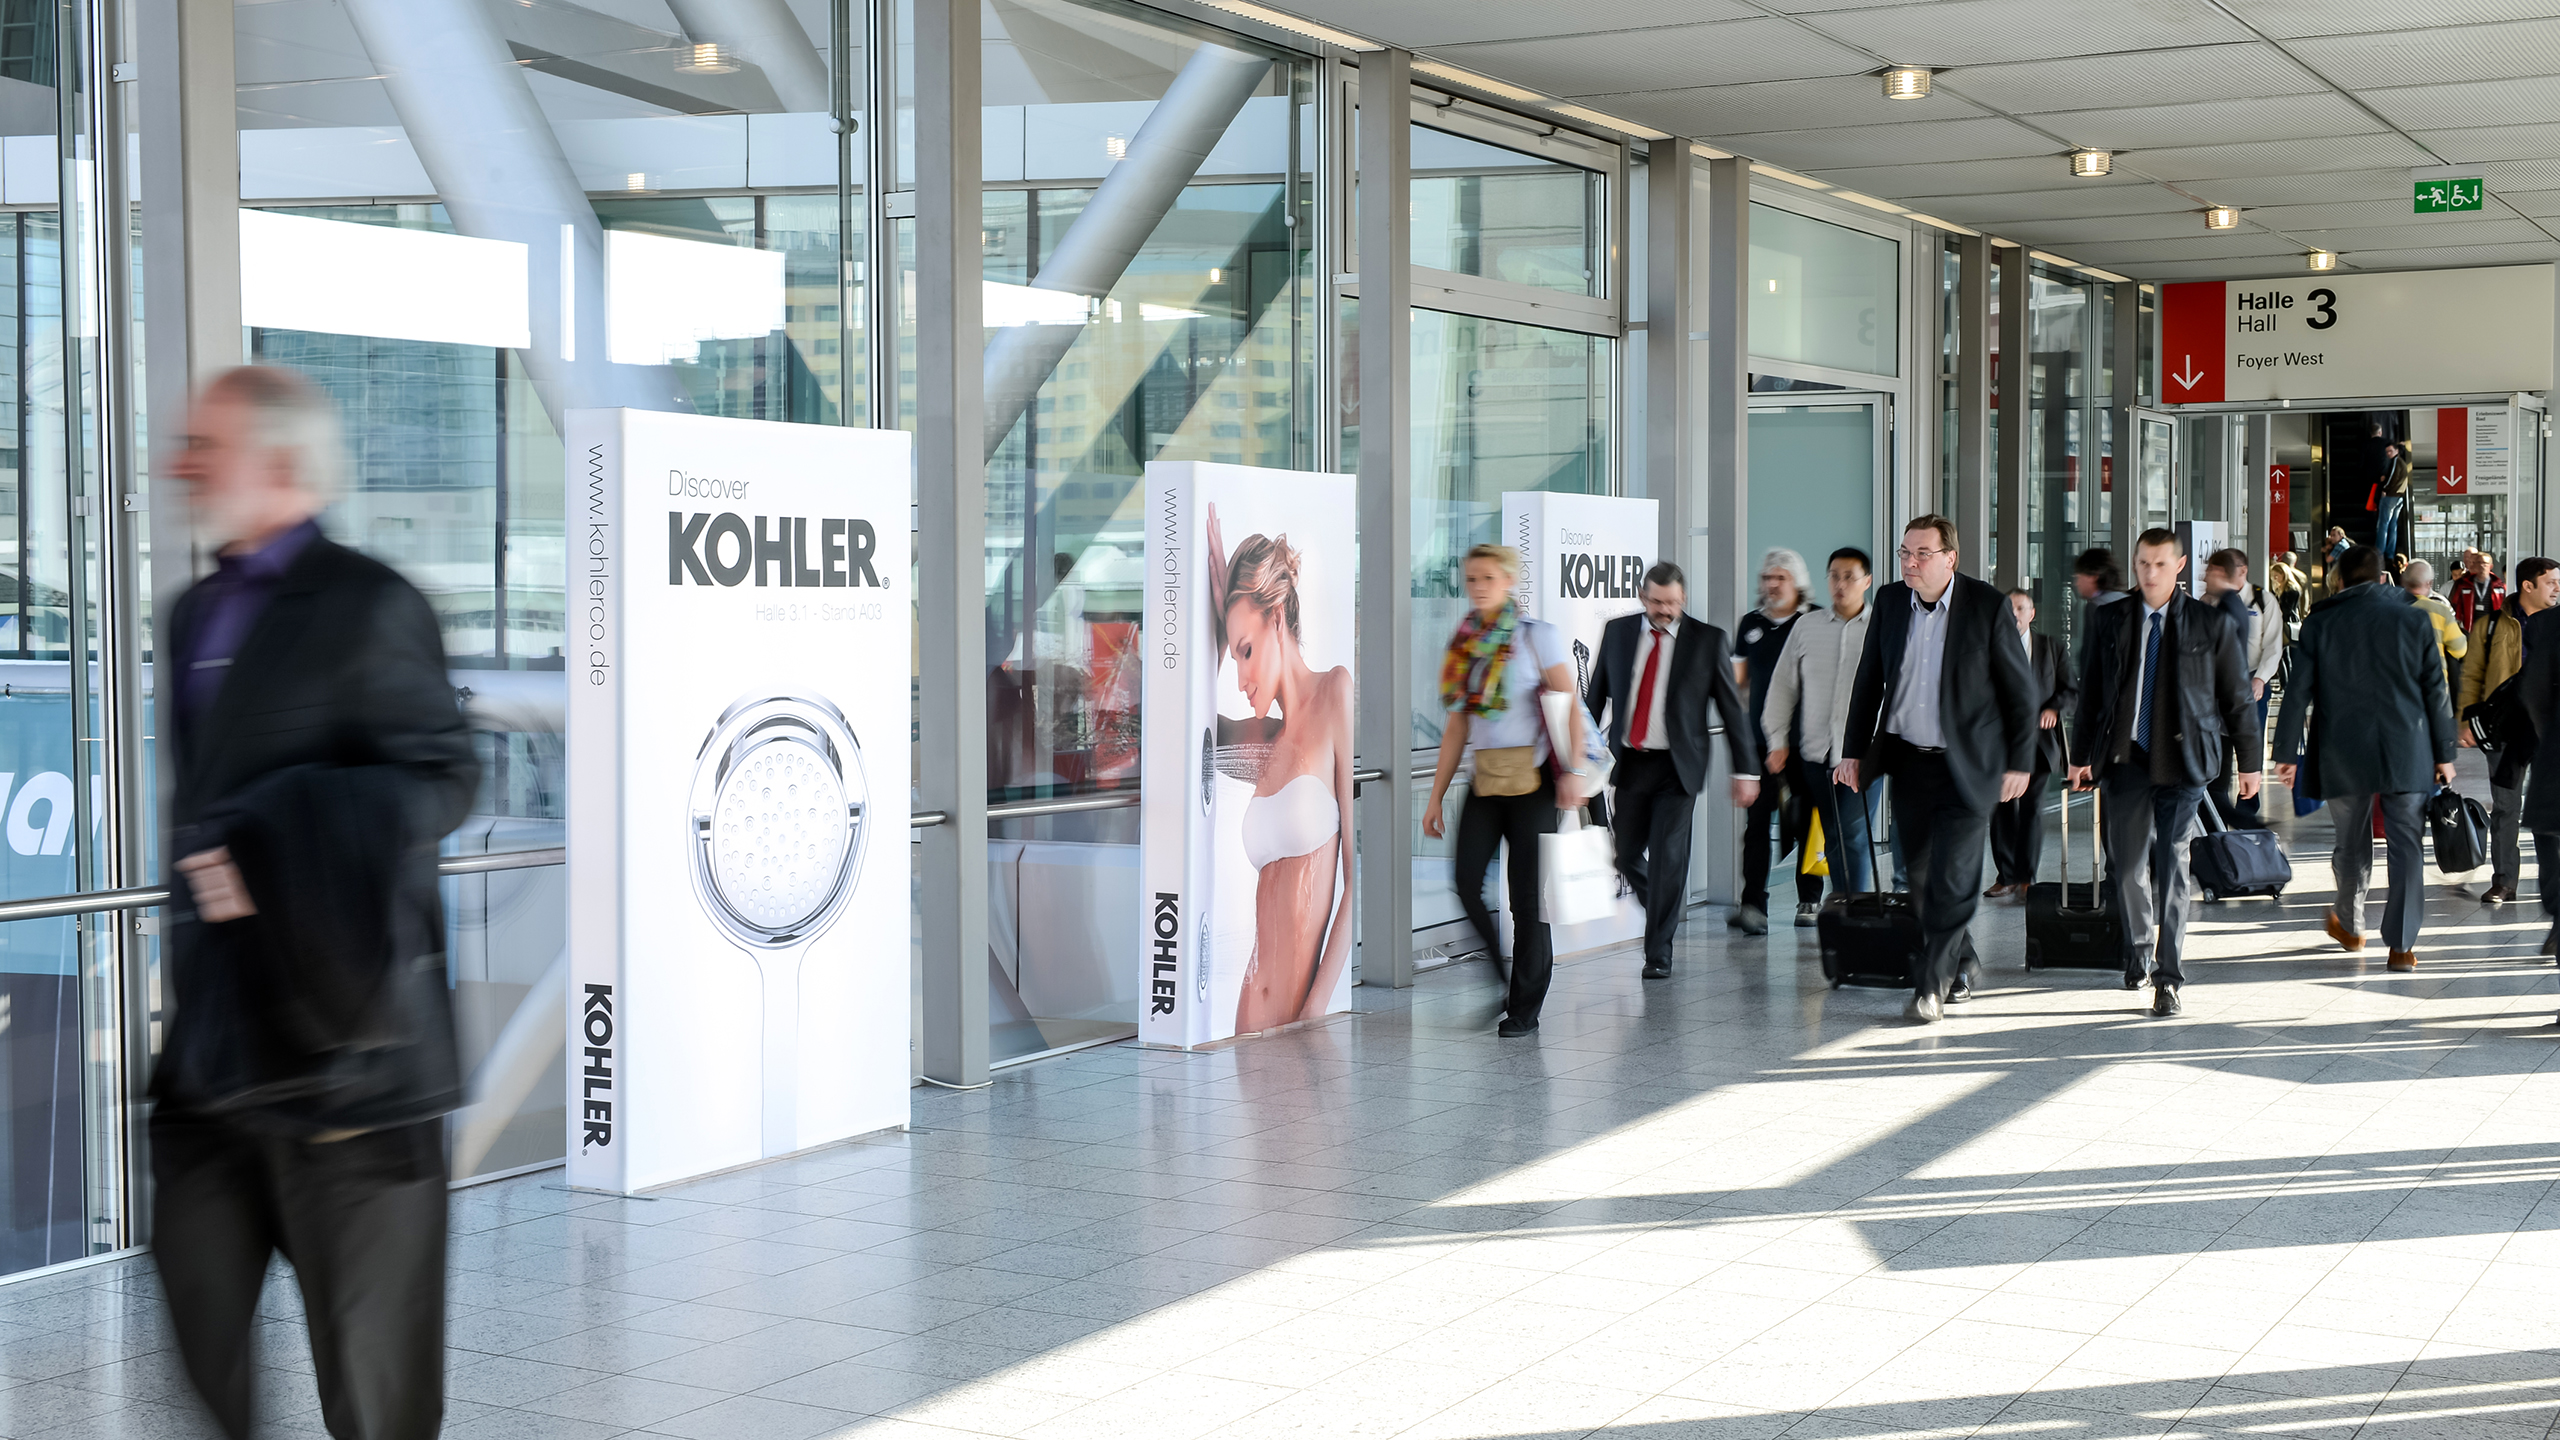 Advertising space in the building of Messe Frankfurt